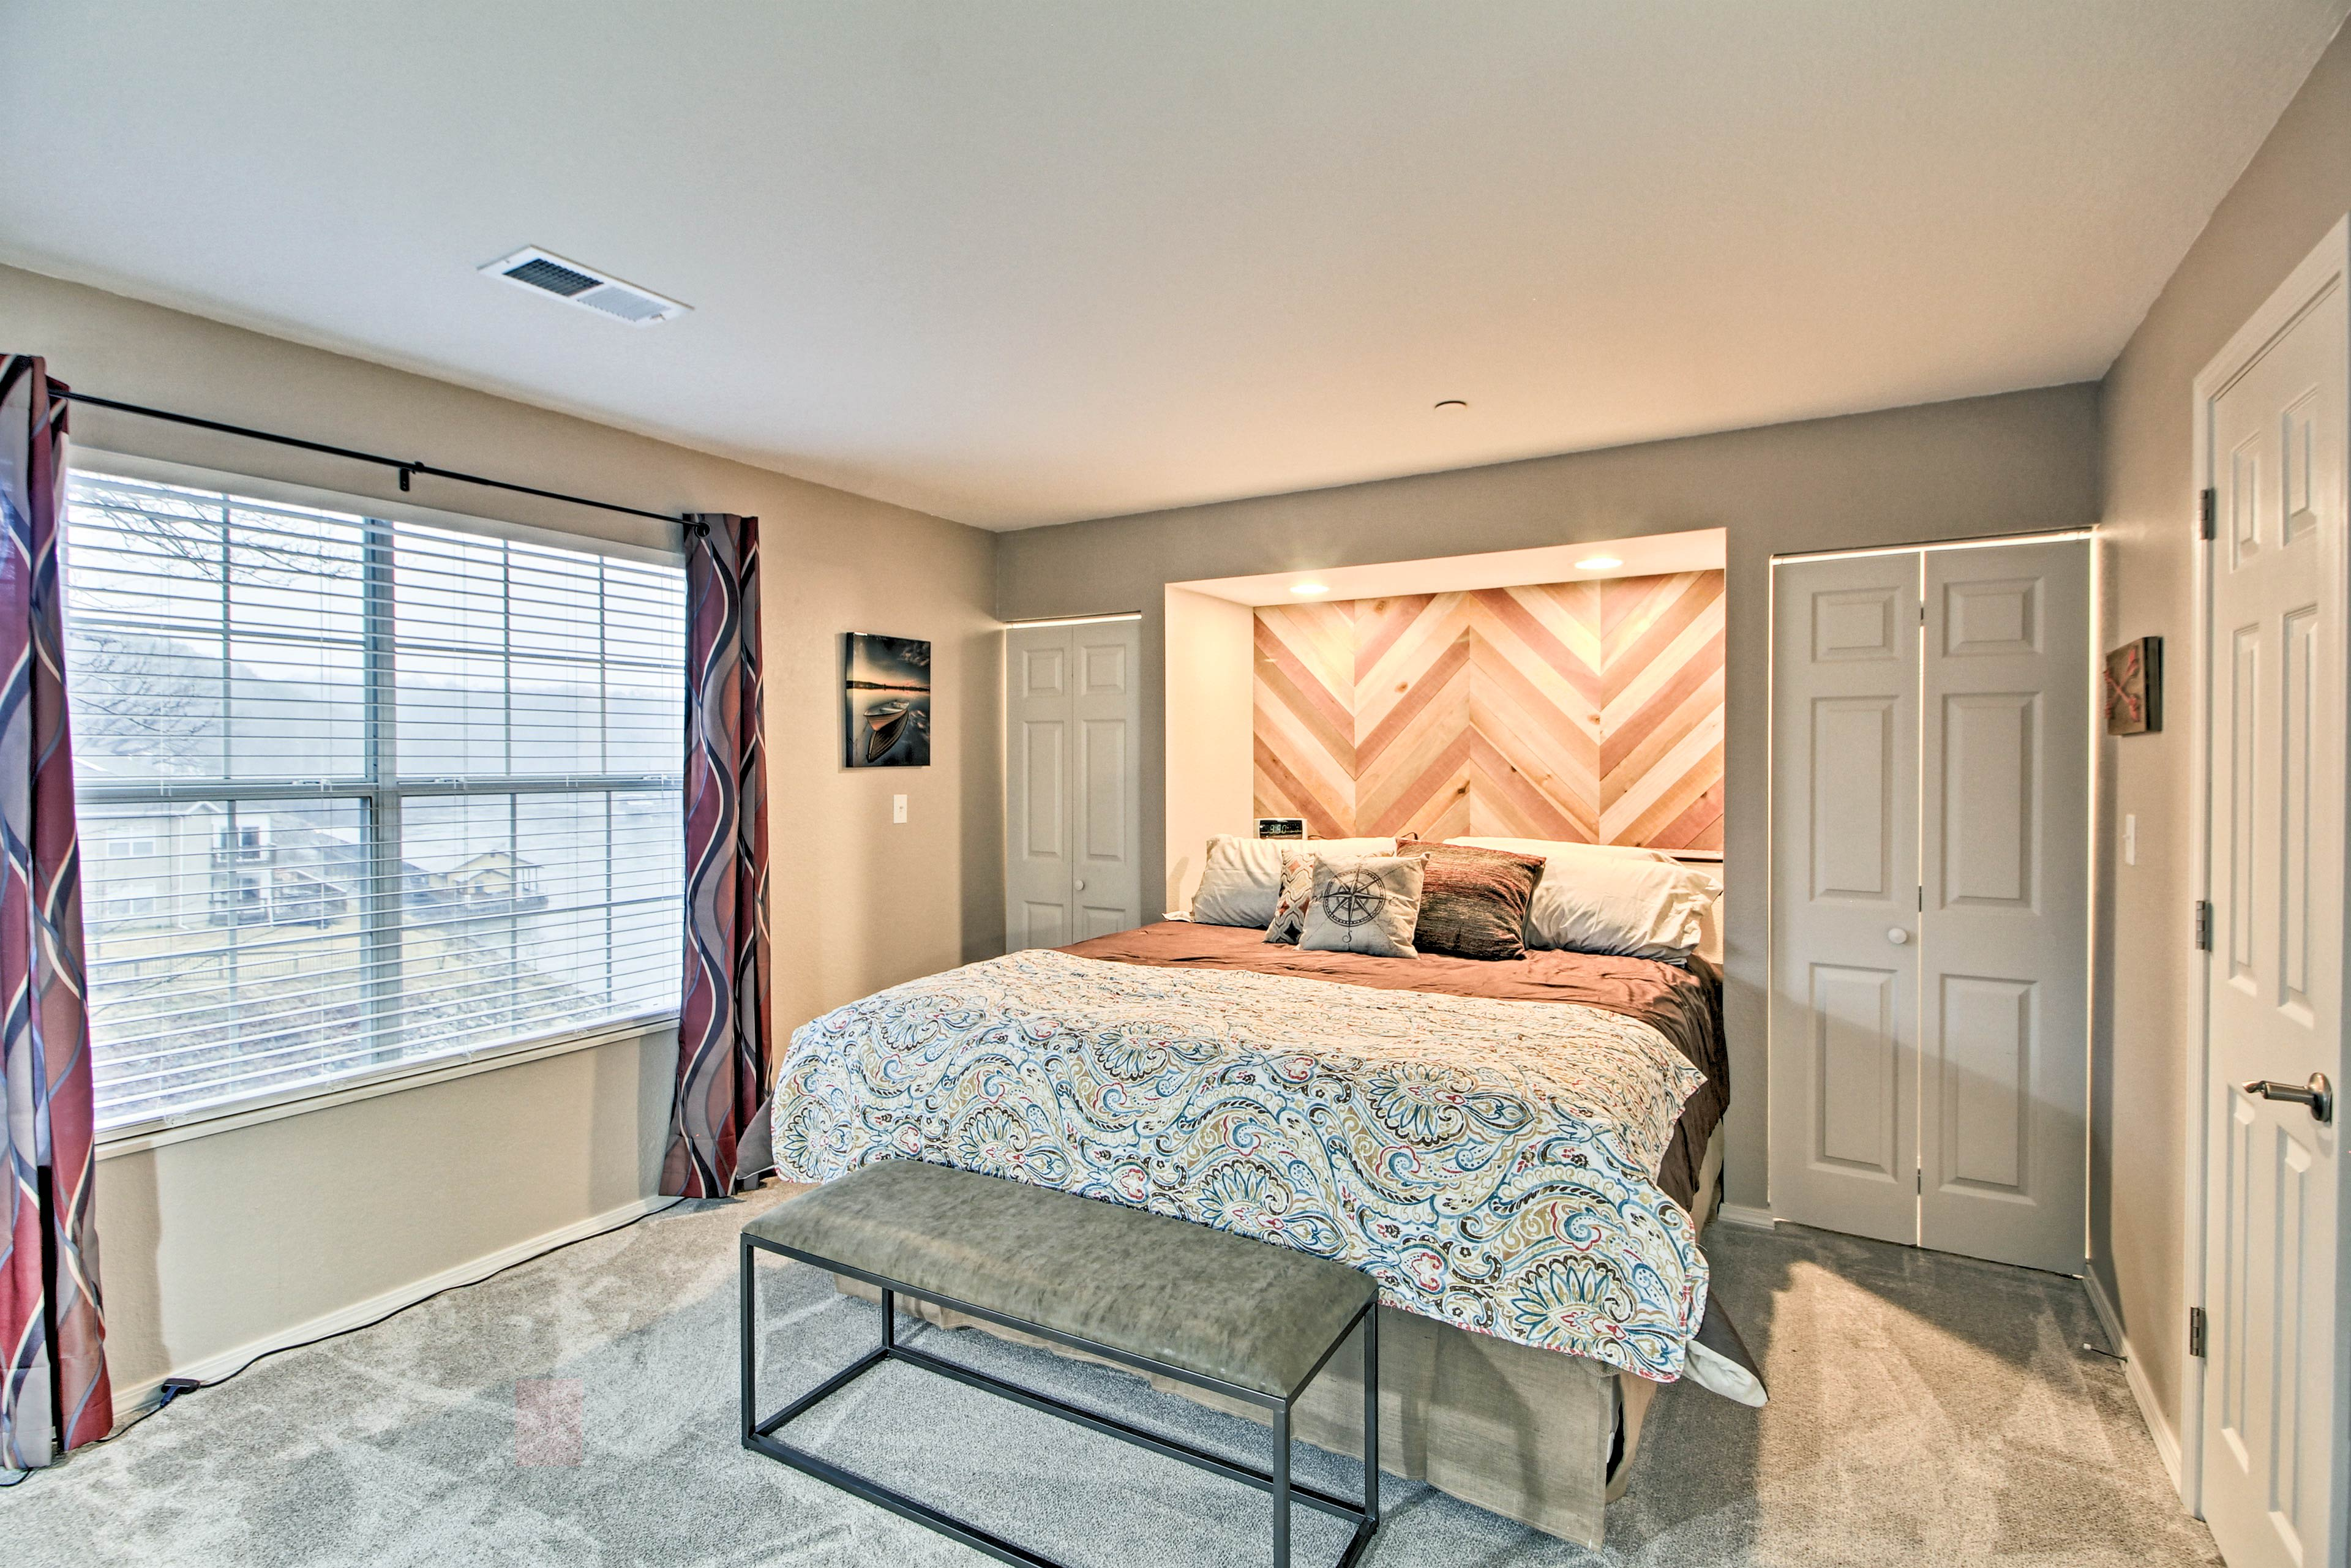 Heads of the household can claim this lovely master bedroom for themselves.